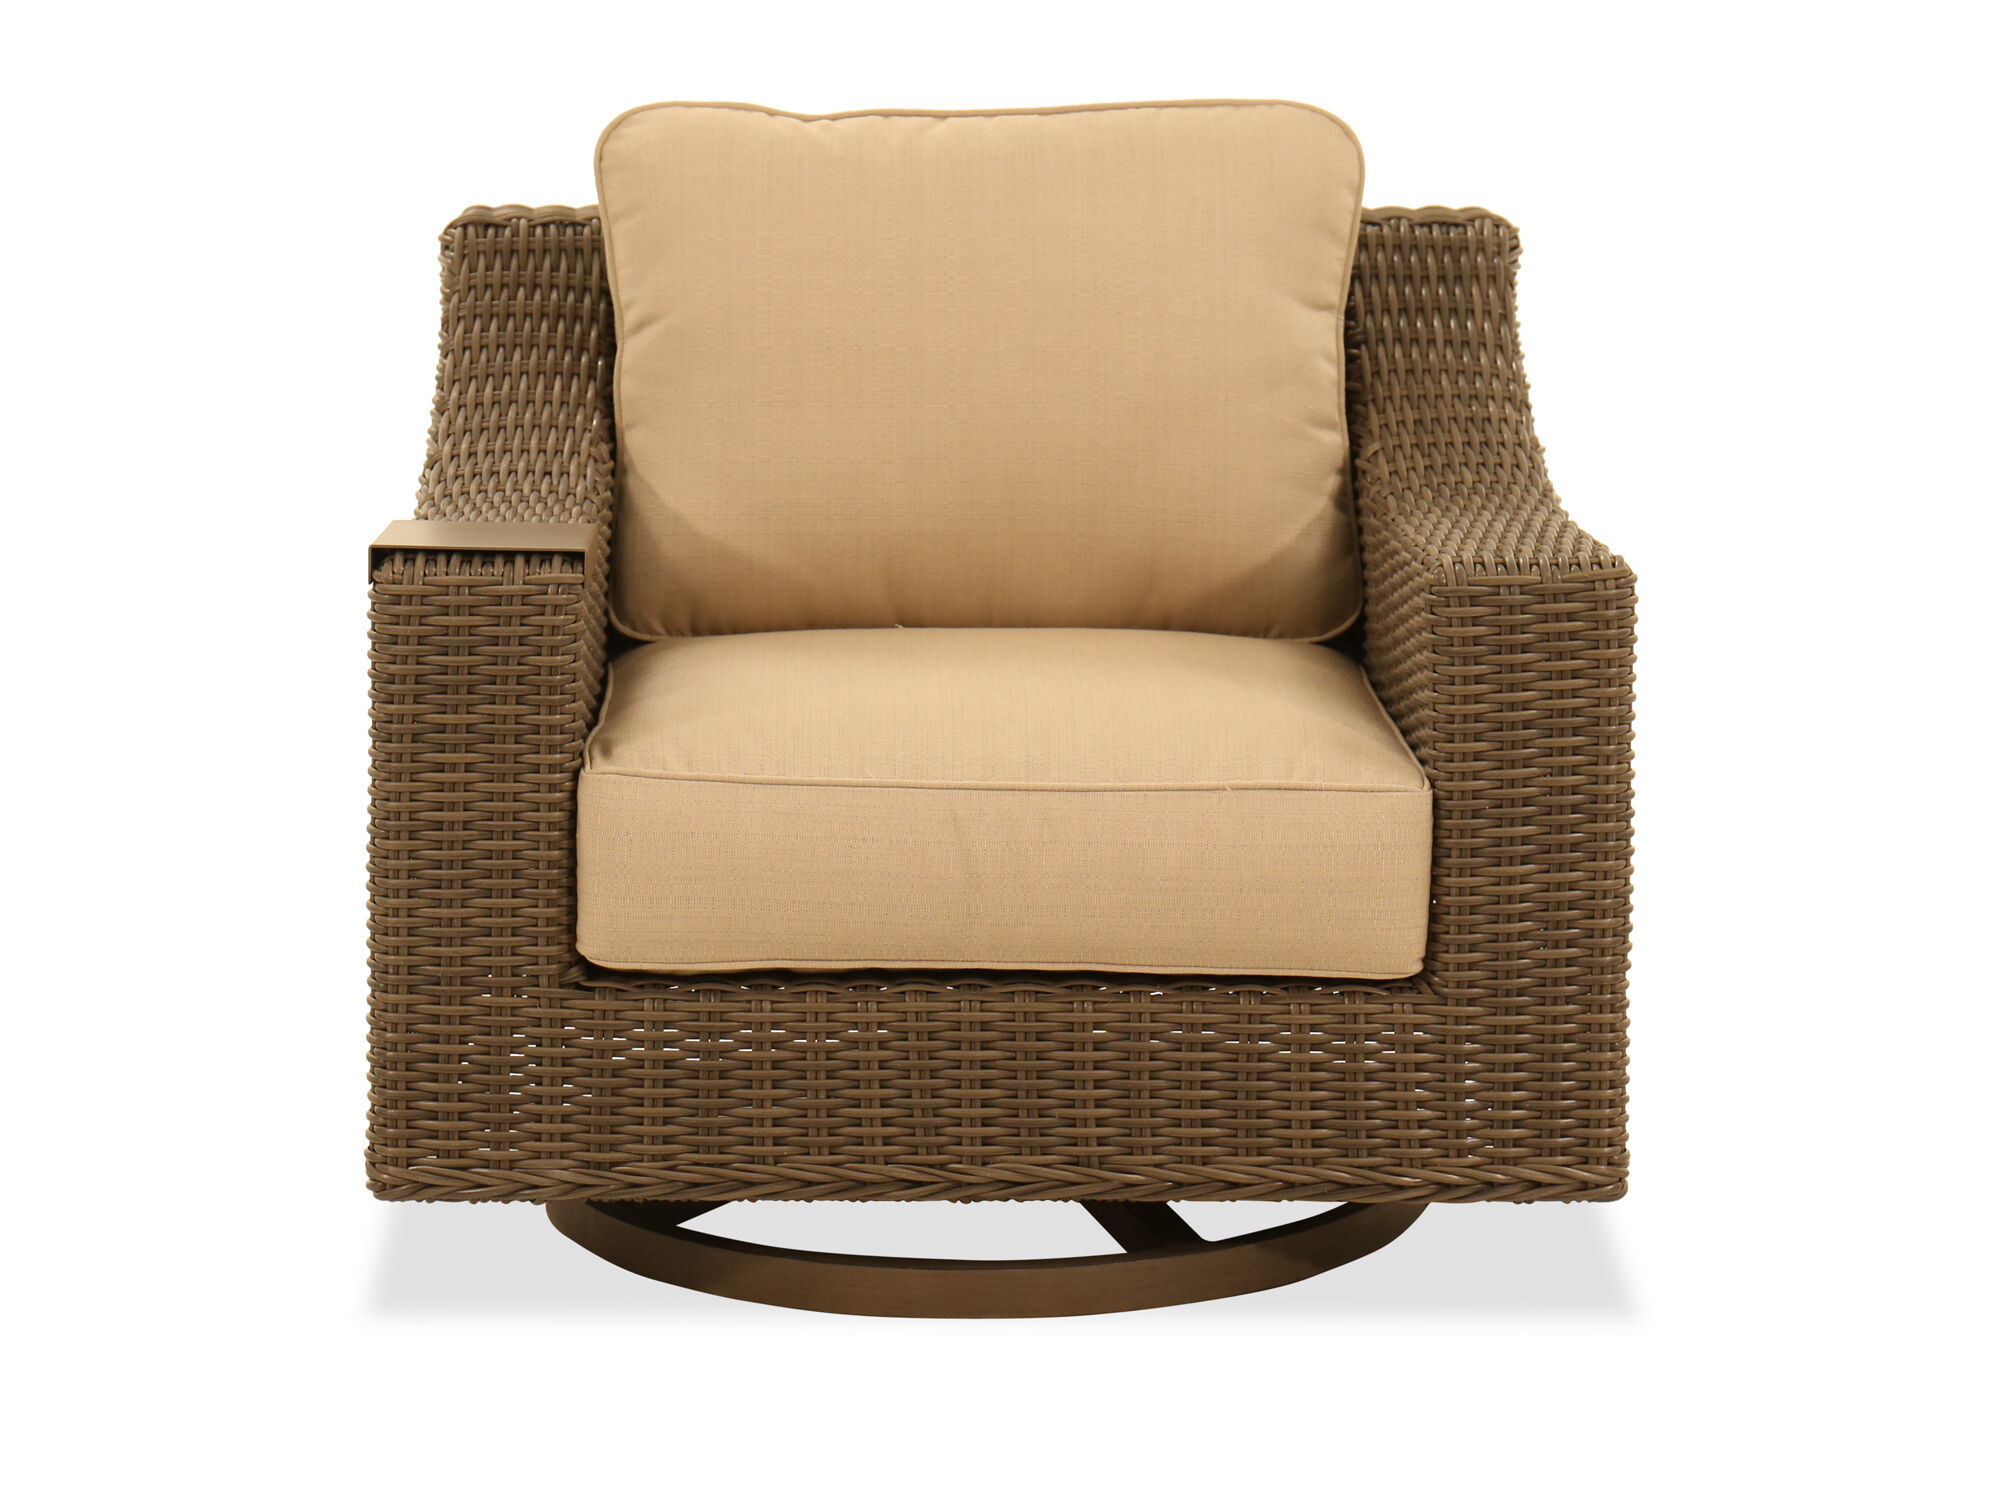 Swivel Glider Club Chair In Aged Teak Mathis Brothers